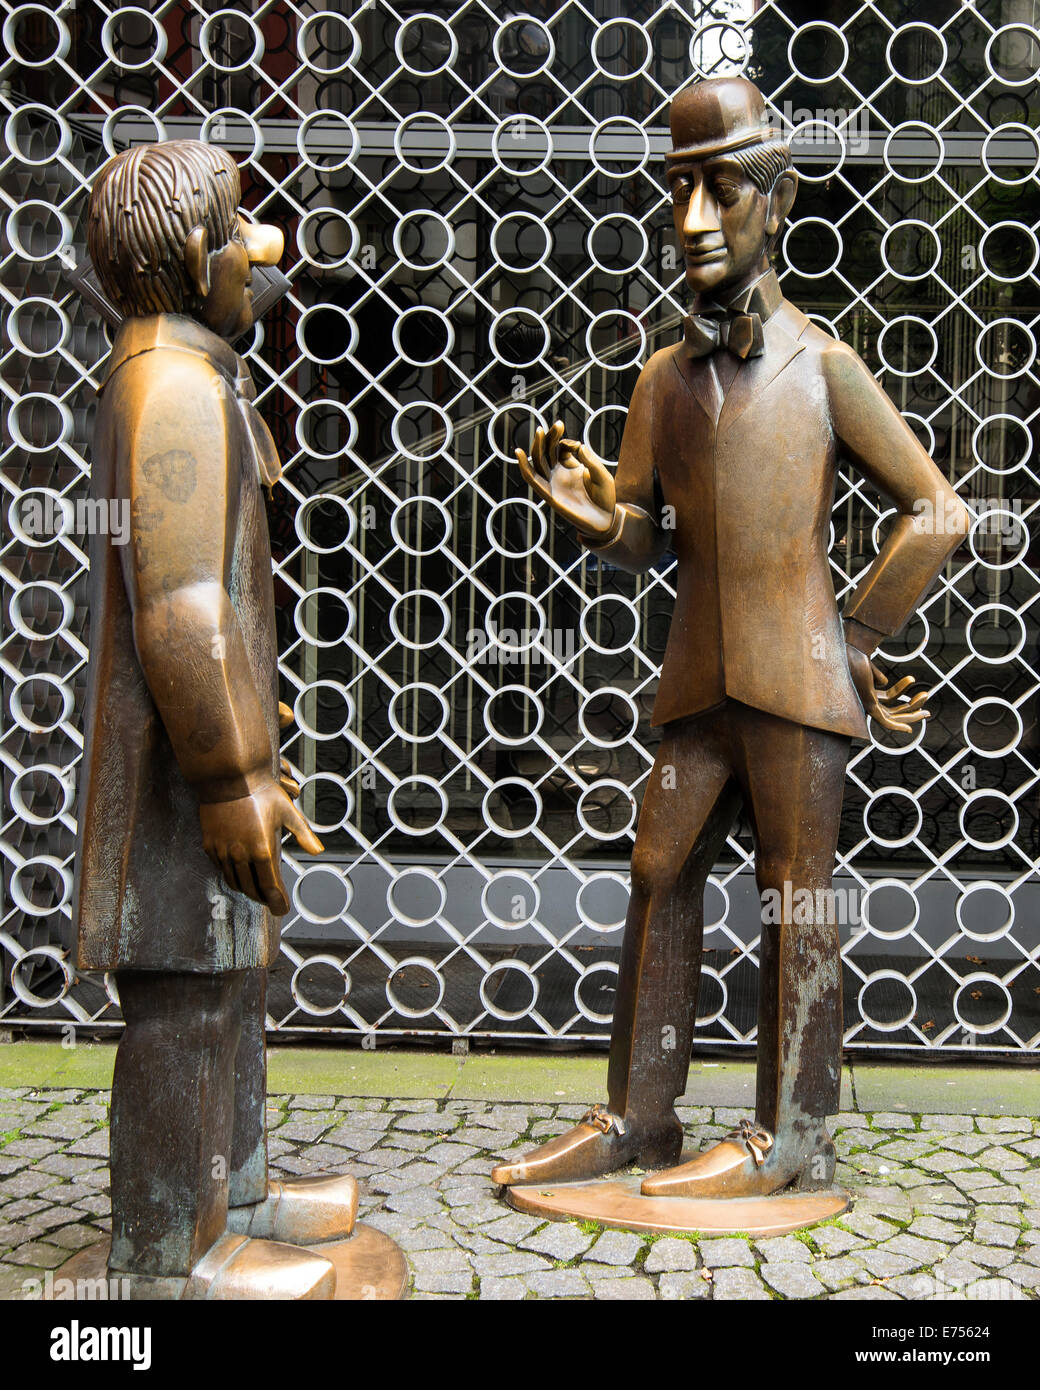 L'original du groupe de sculptures dans la rue, de cologne, Köln, Allemagne, Europe Photo Stock